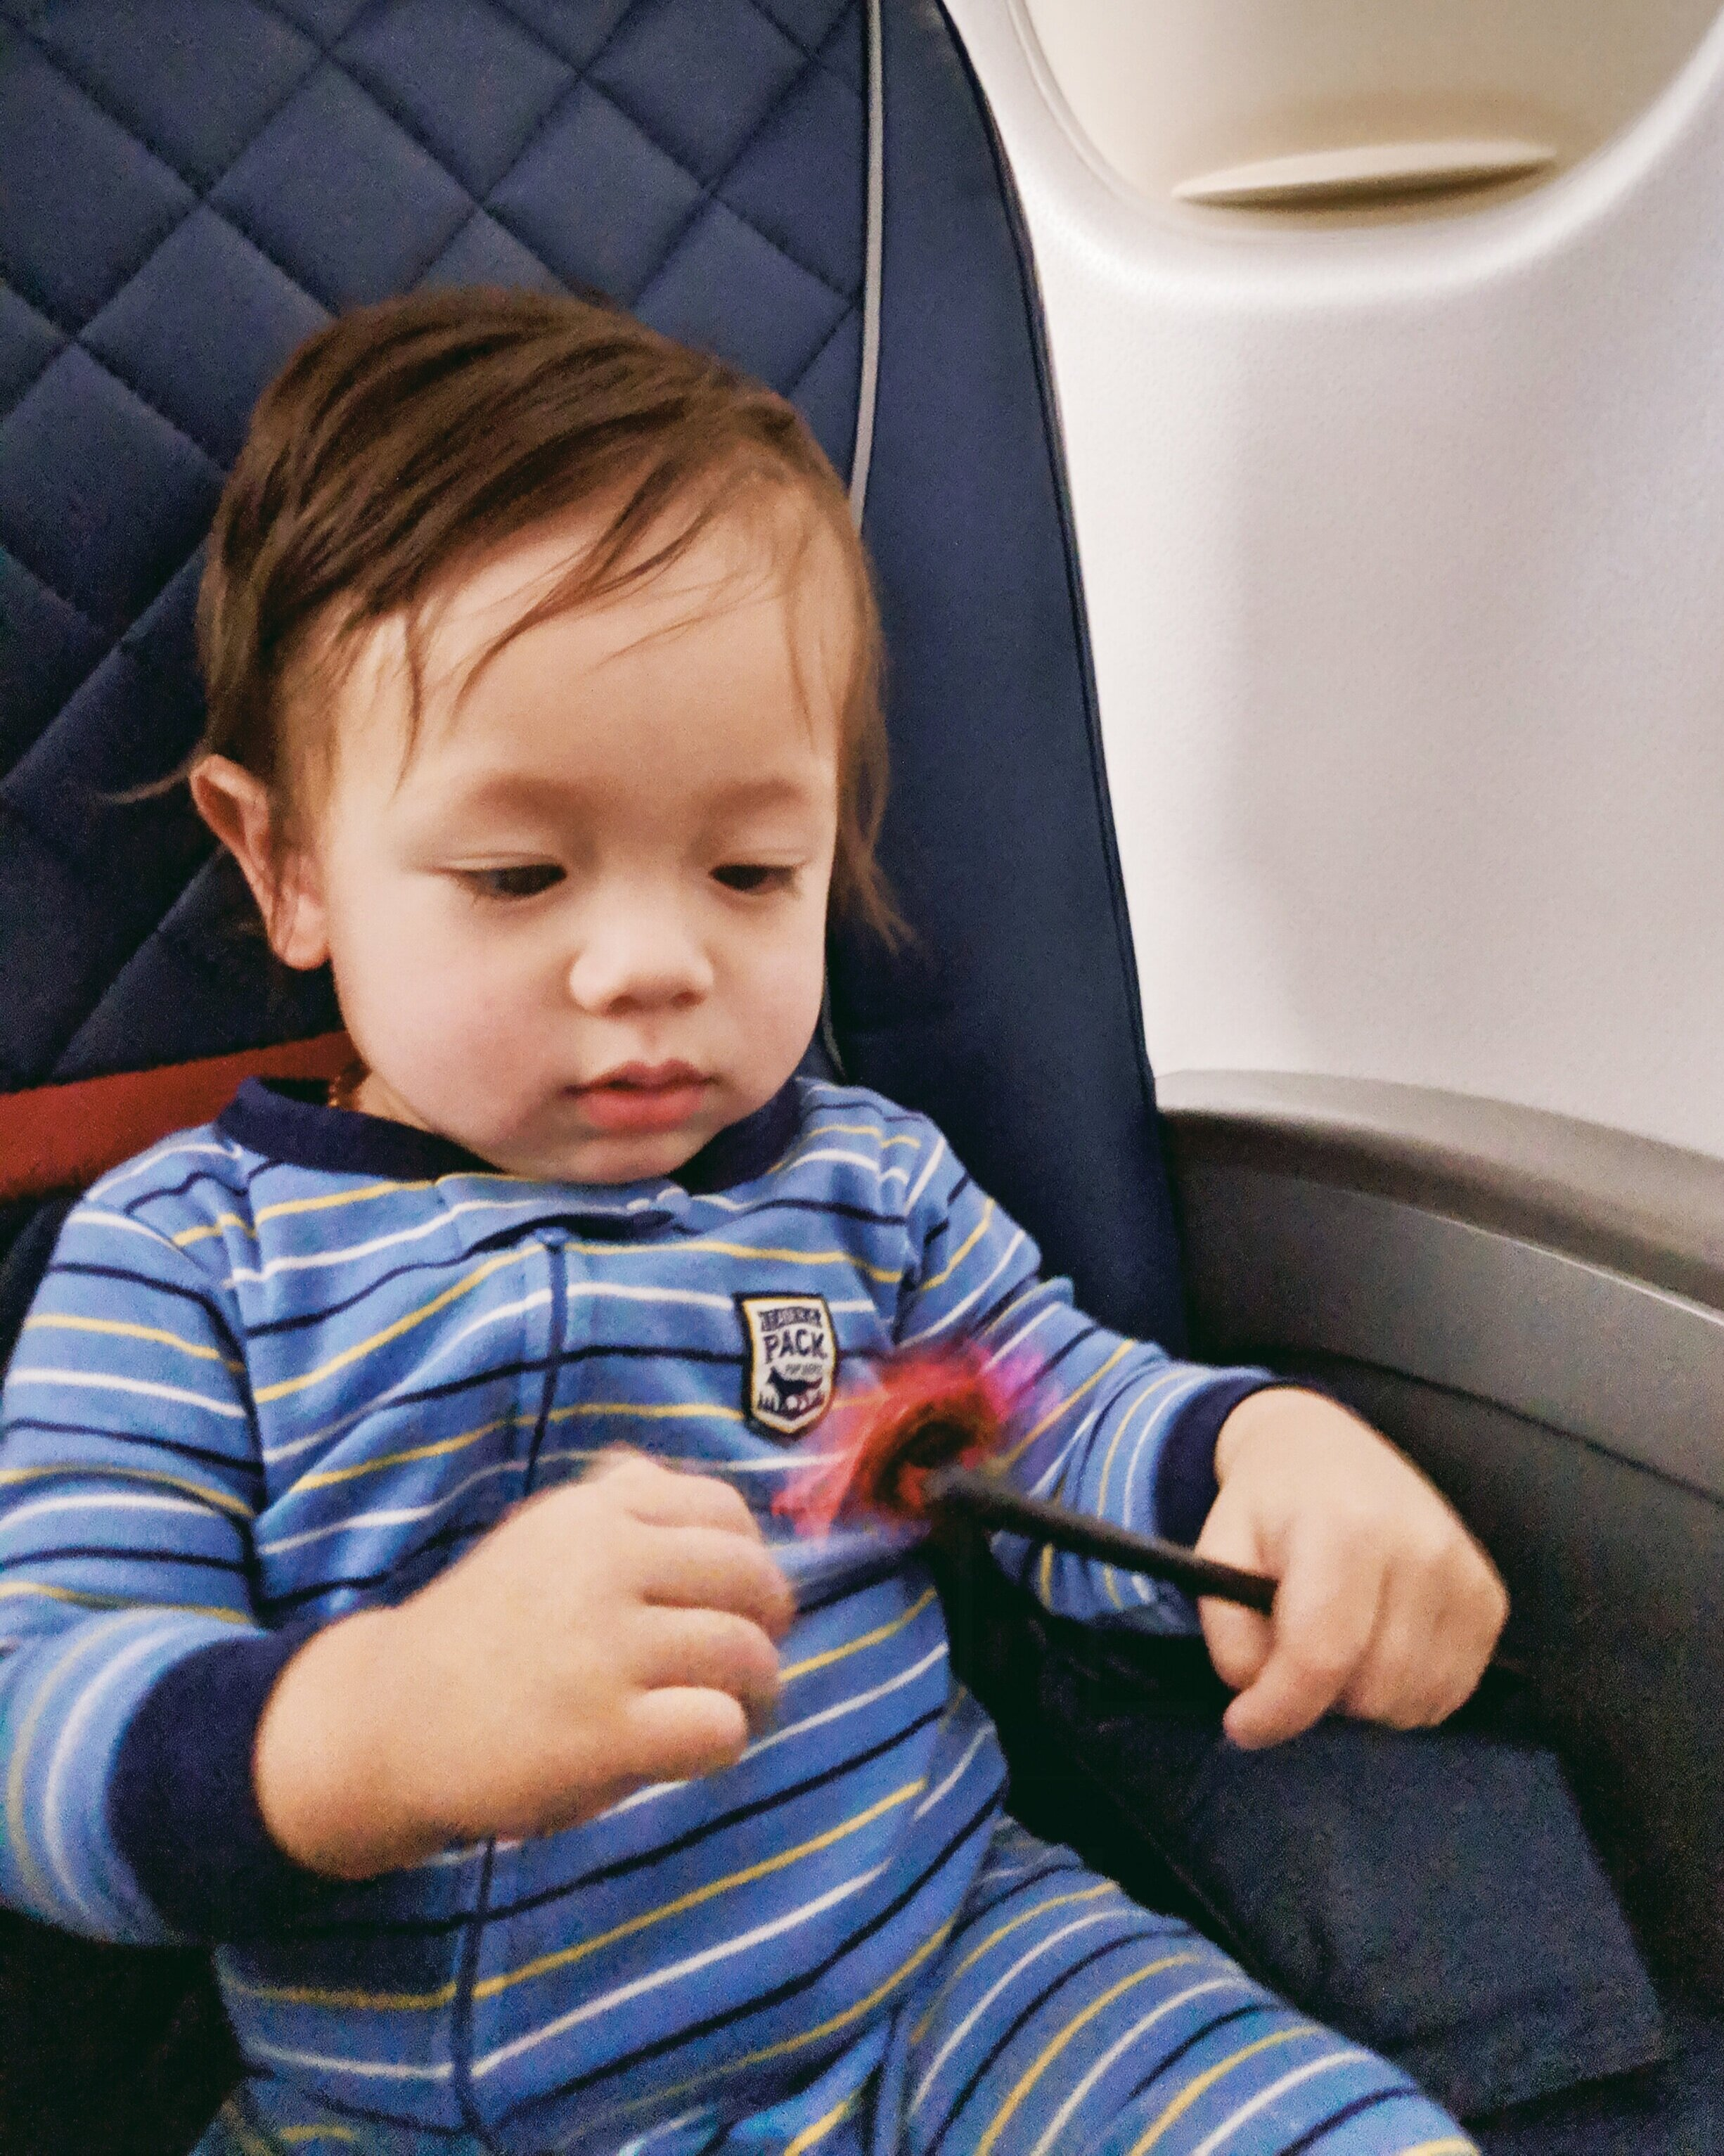 Orlo playing with a pinwheel from the Travel Toyz pack for an entire flight